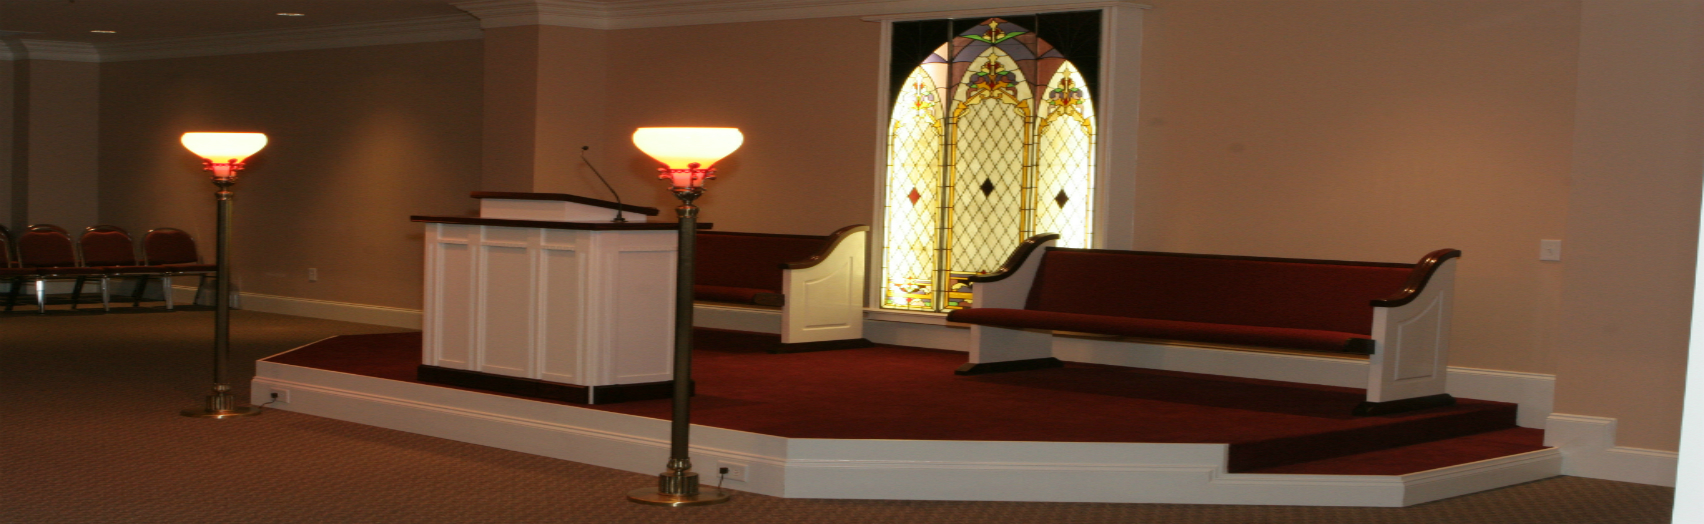 Burial Services | Murfreesboro Funeral Home serving